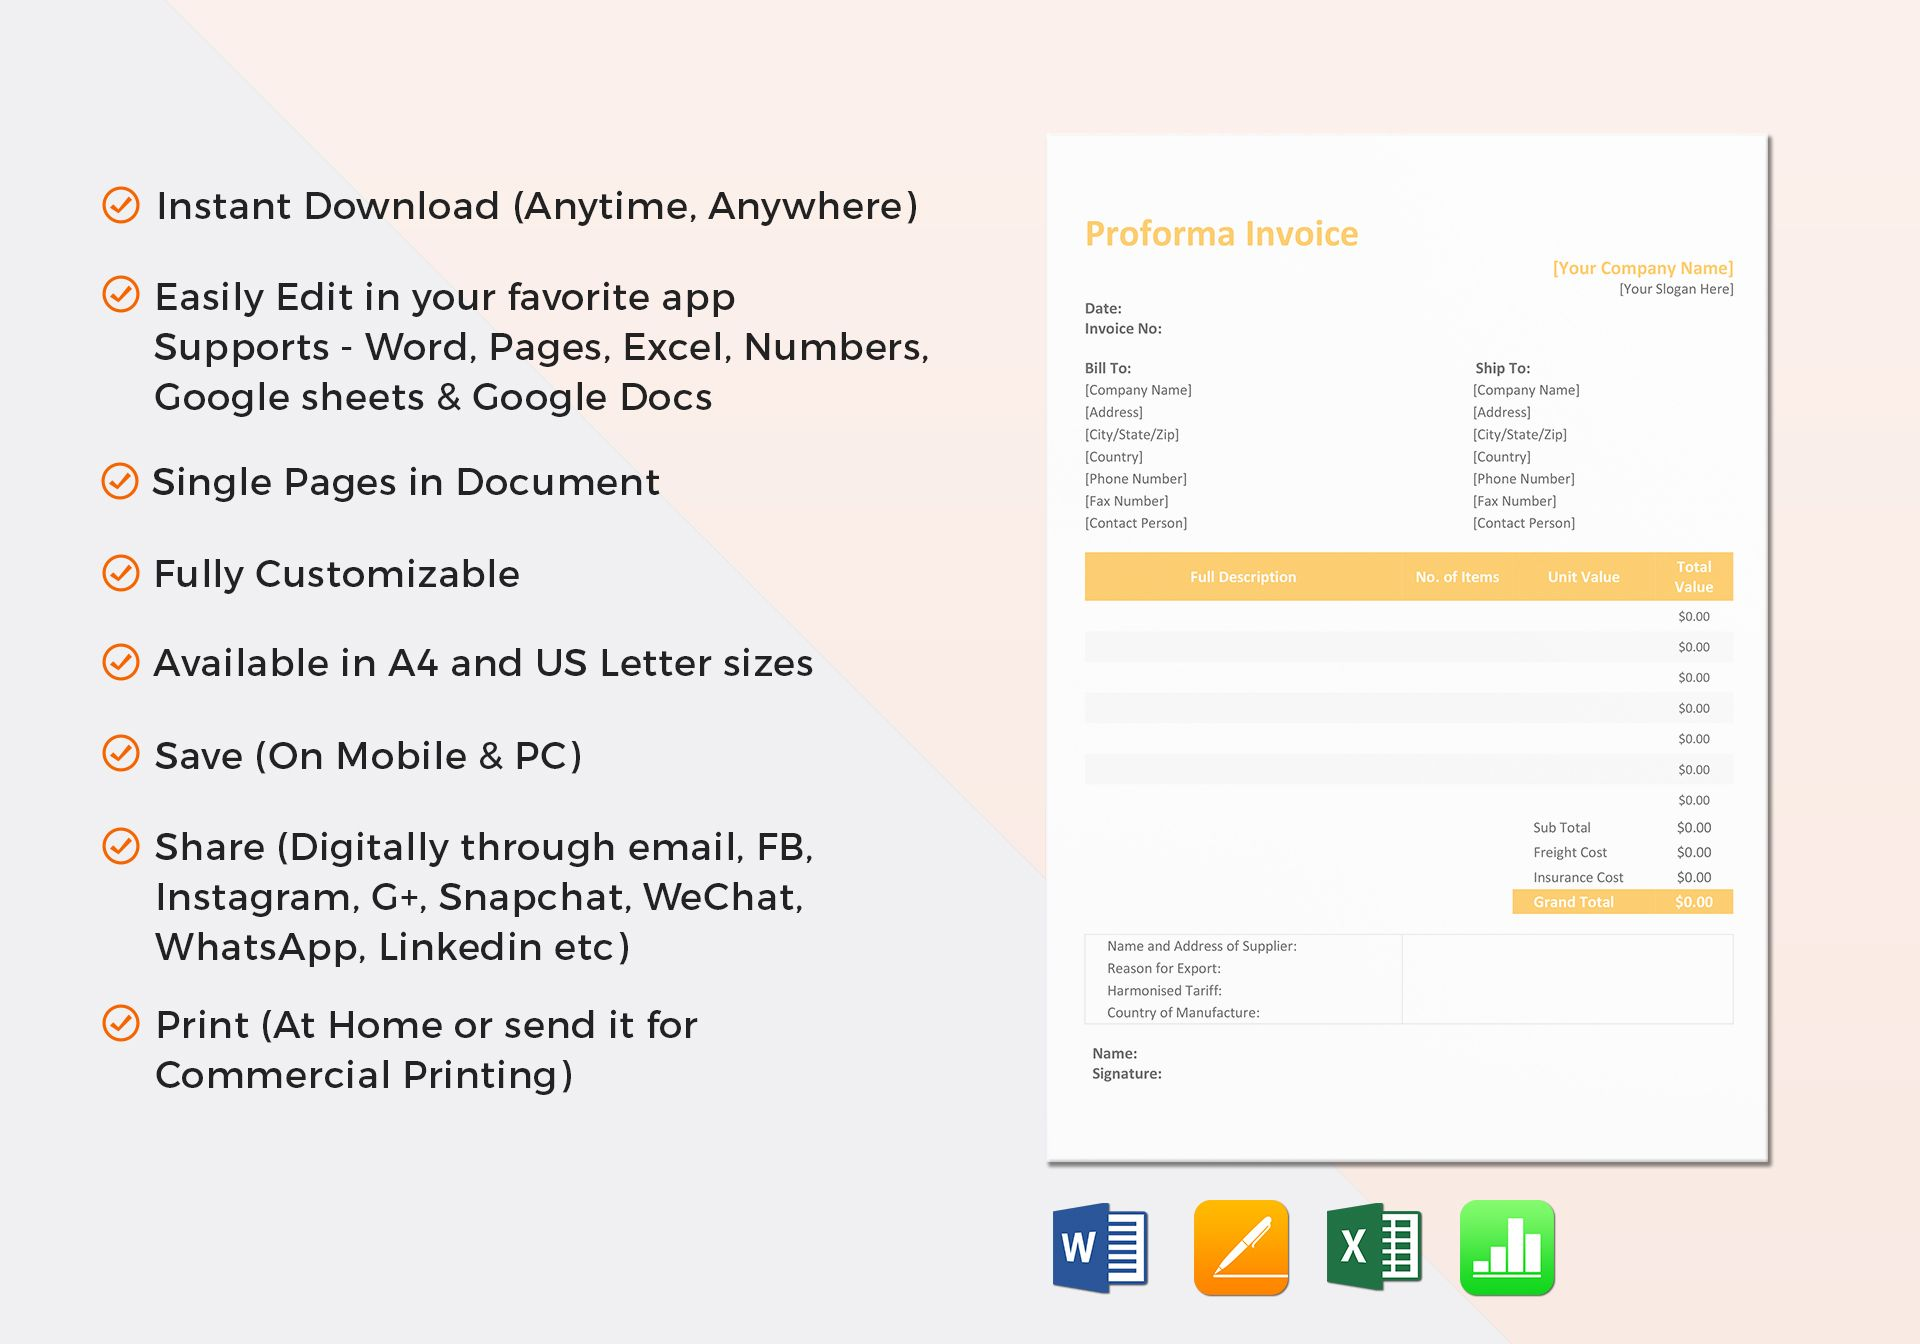 Proforma Invoice Template In Word Excel Apple Pages Numbers - What is a proforma invoice